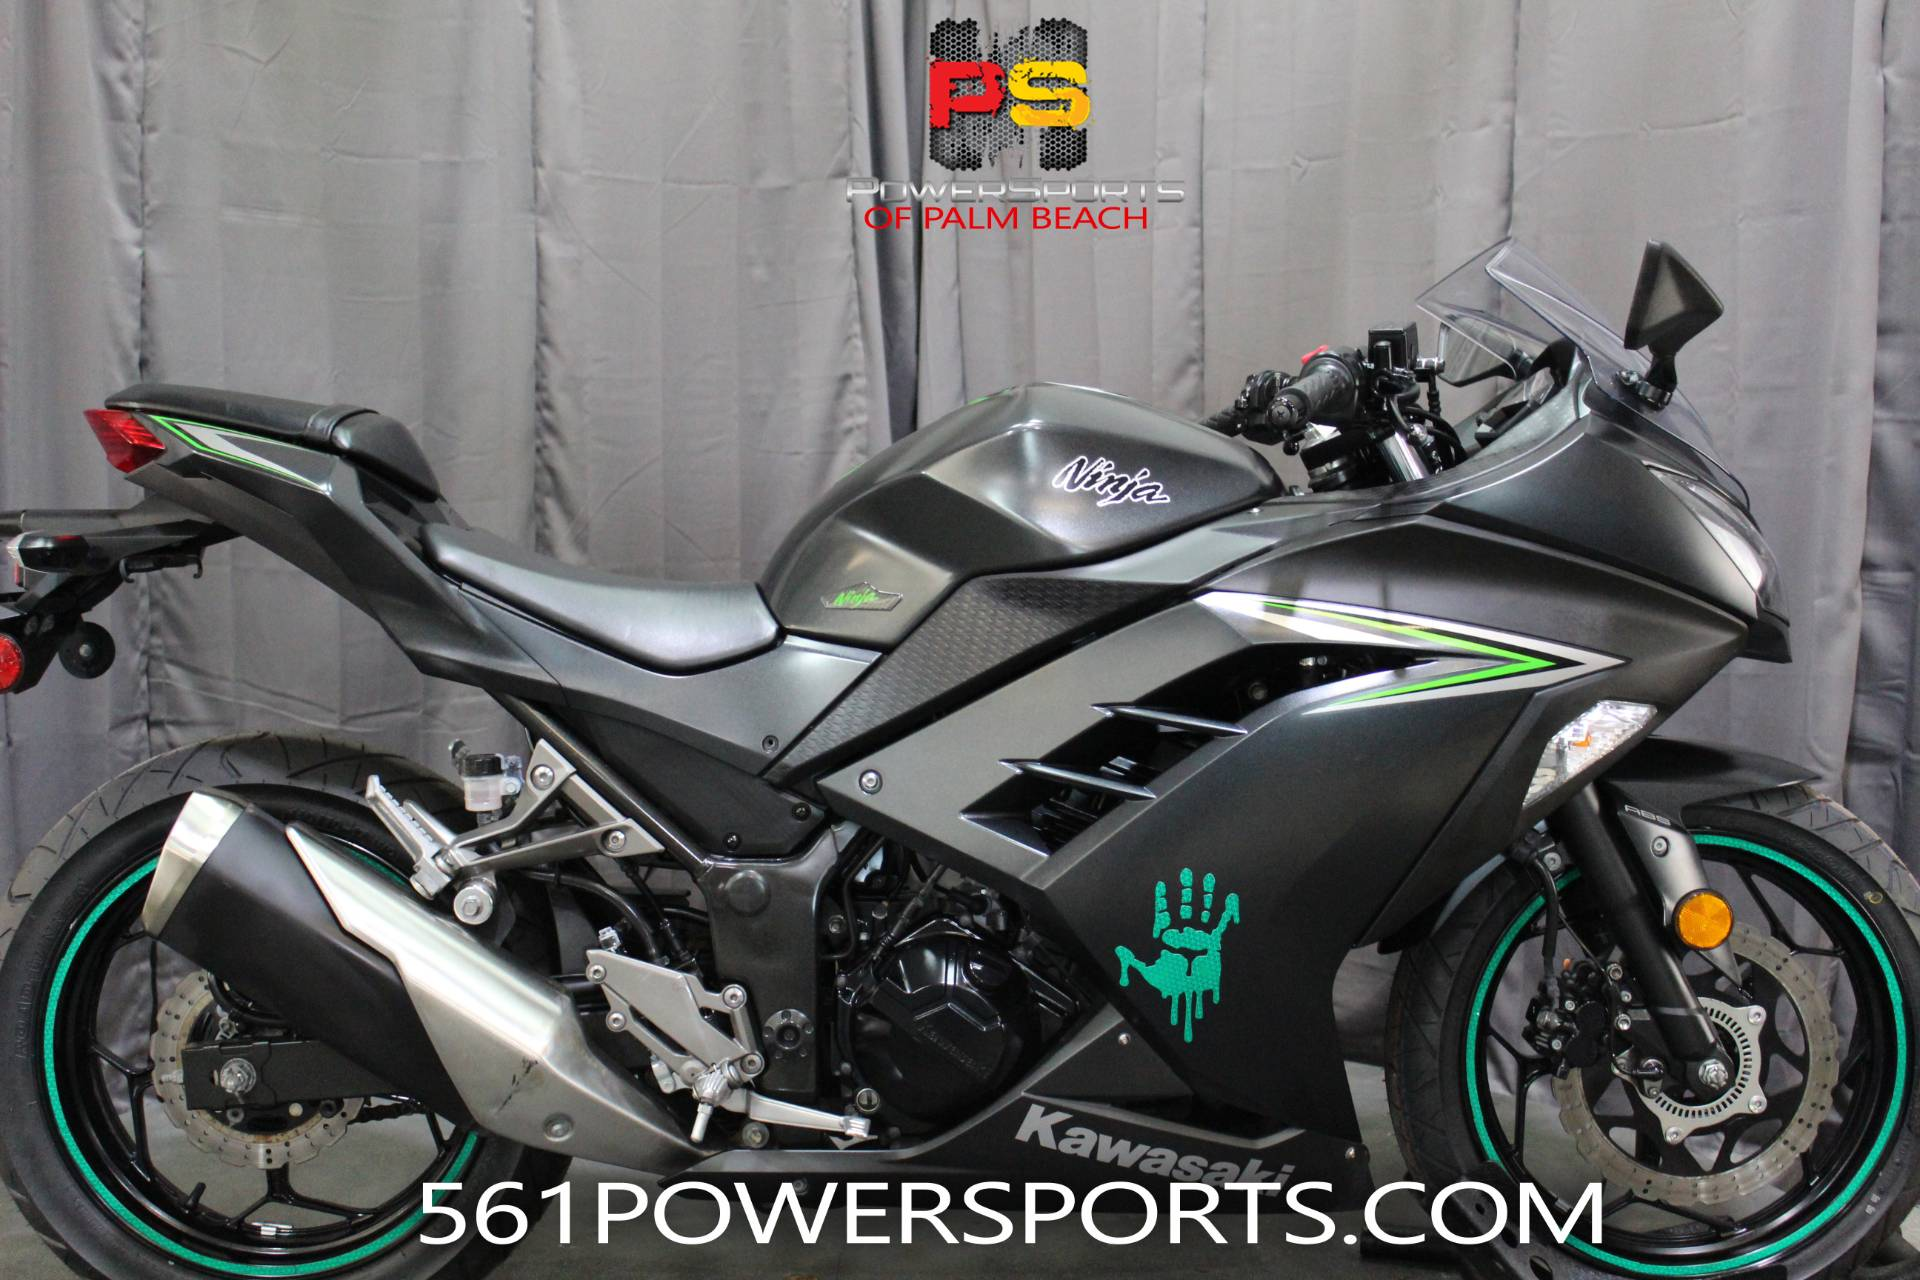 2016 Kawasaki Ninja 300 ABS in Lake Park, Florida - Photo 1